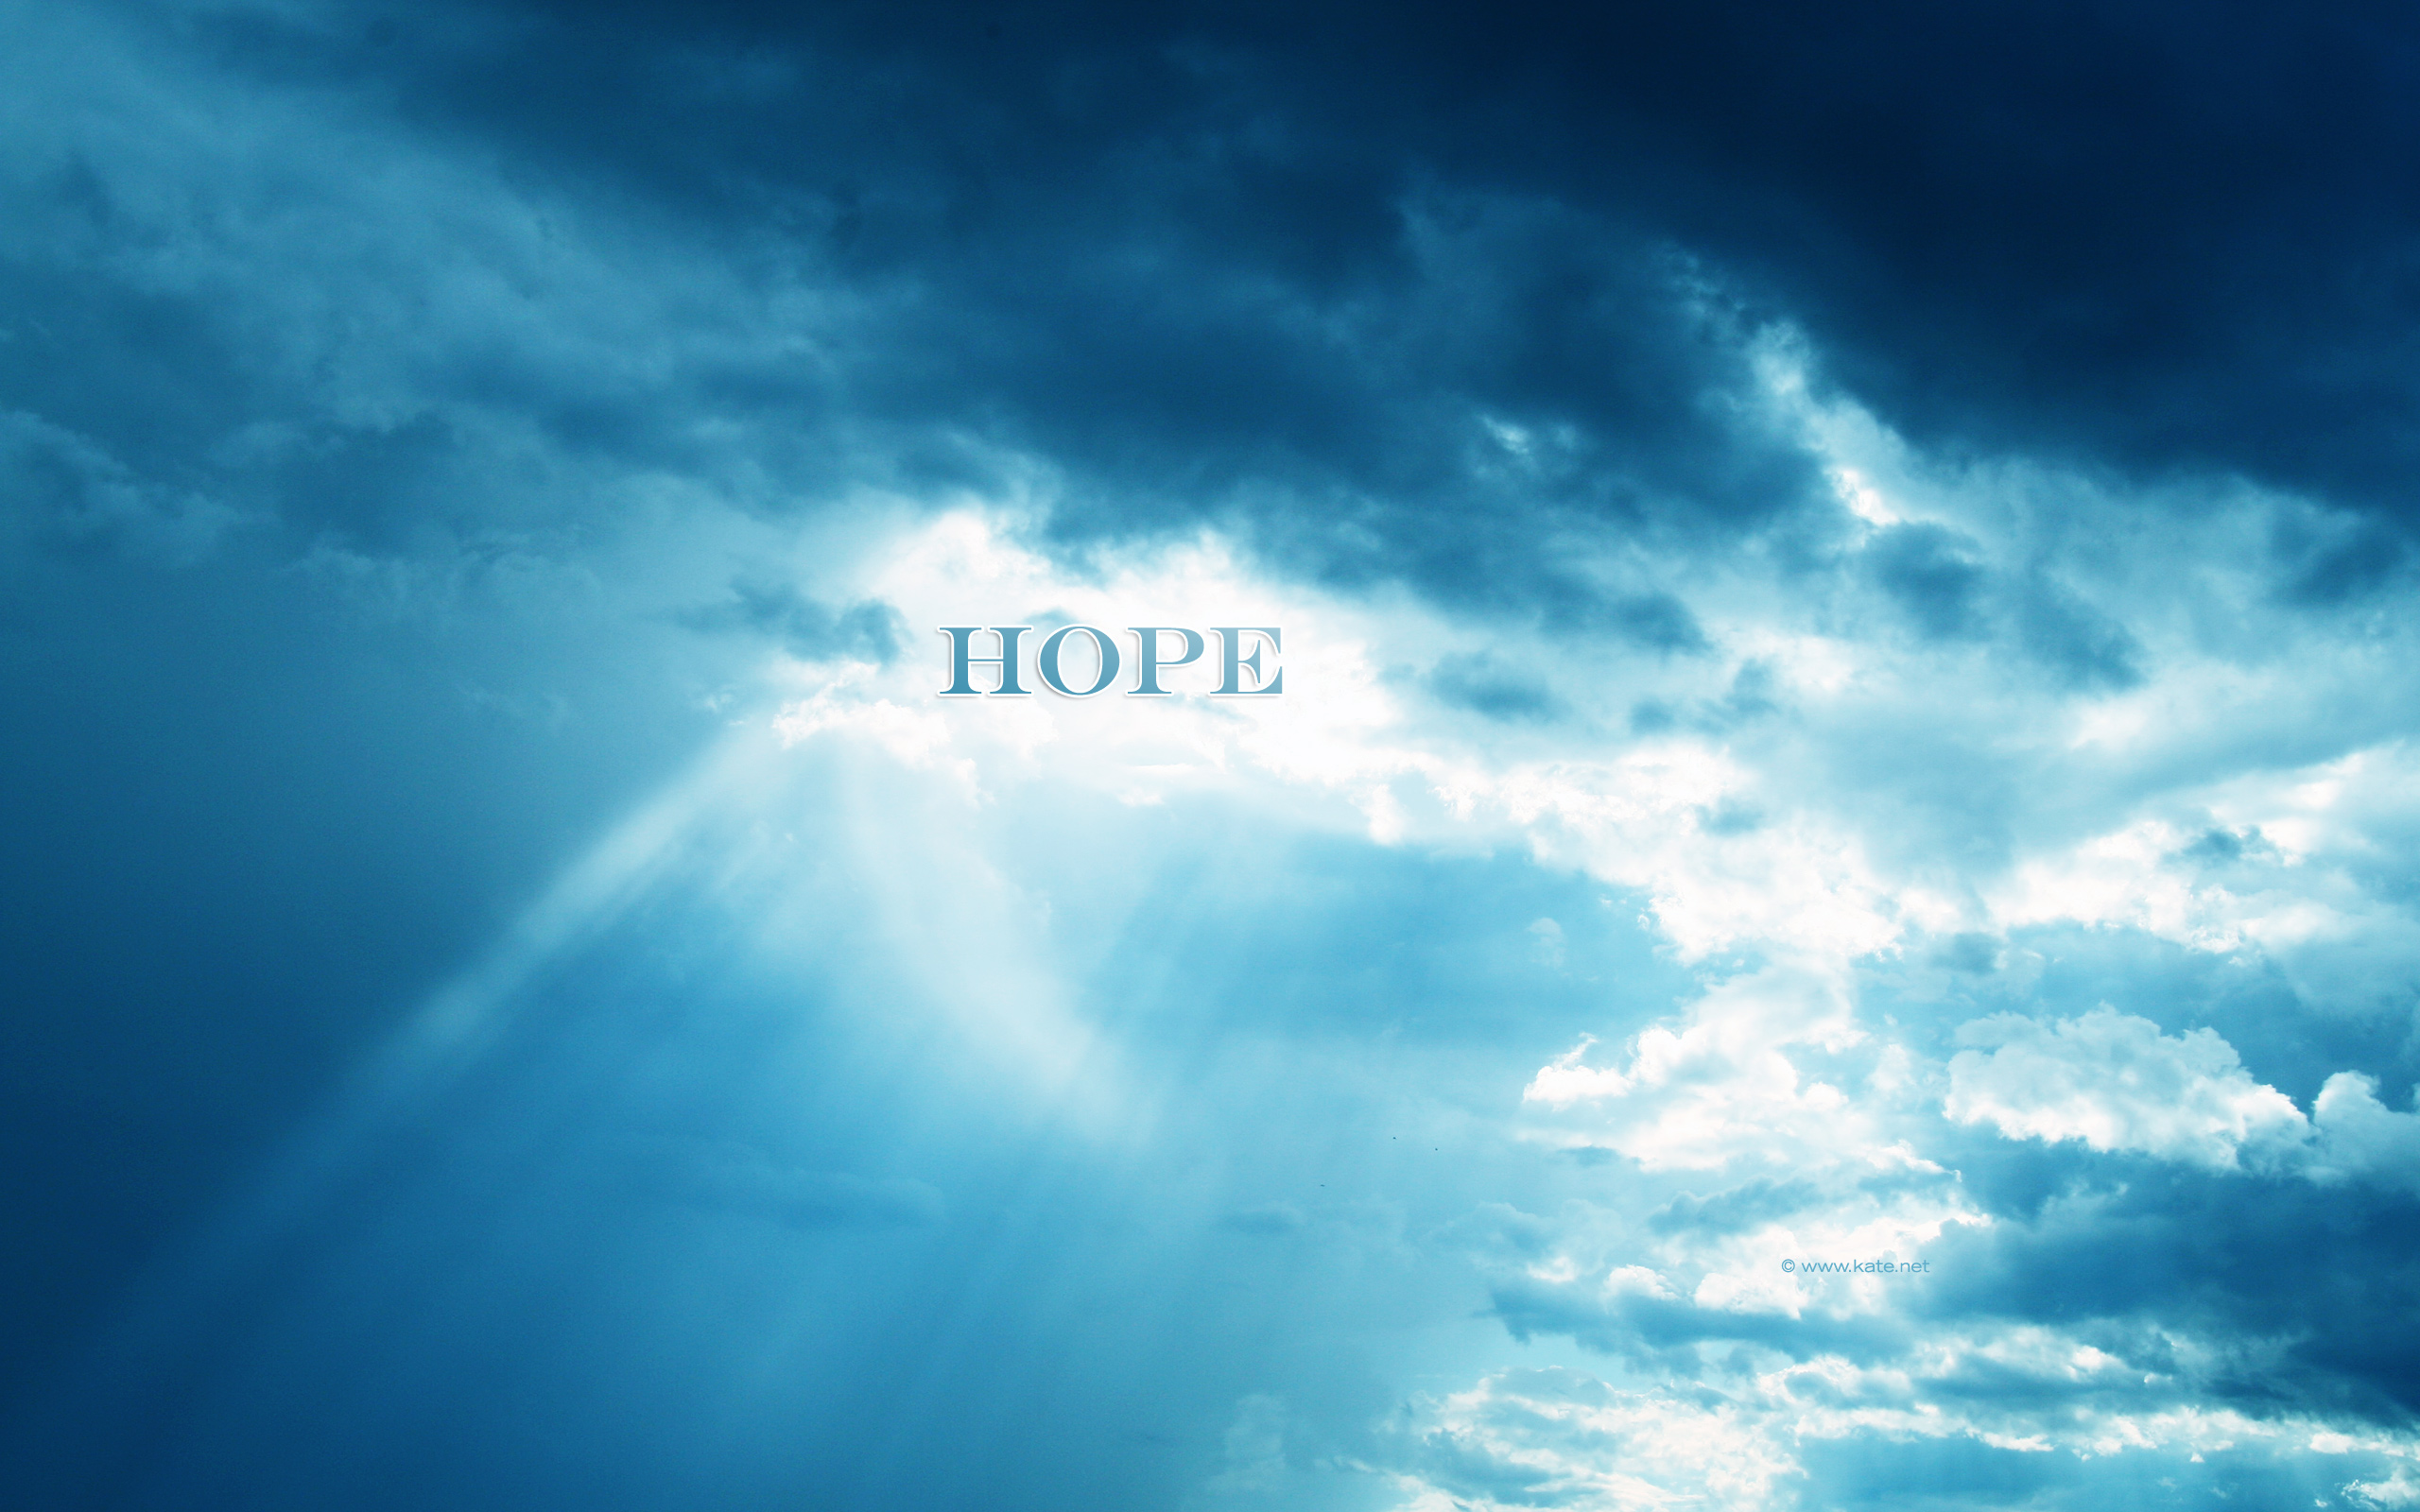 Wallpapers for hope by for Wallpaper for